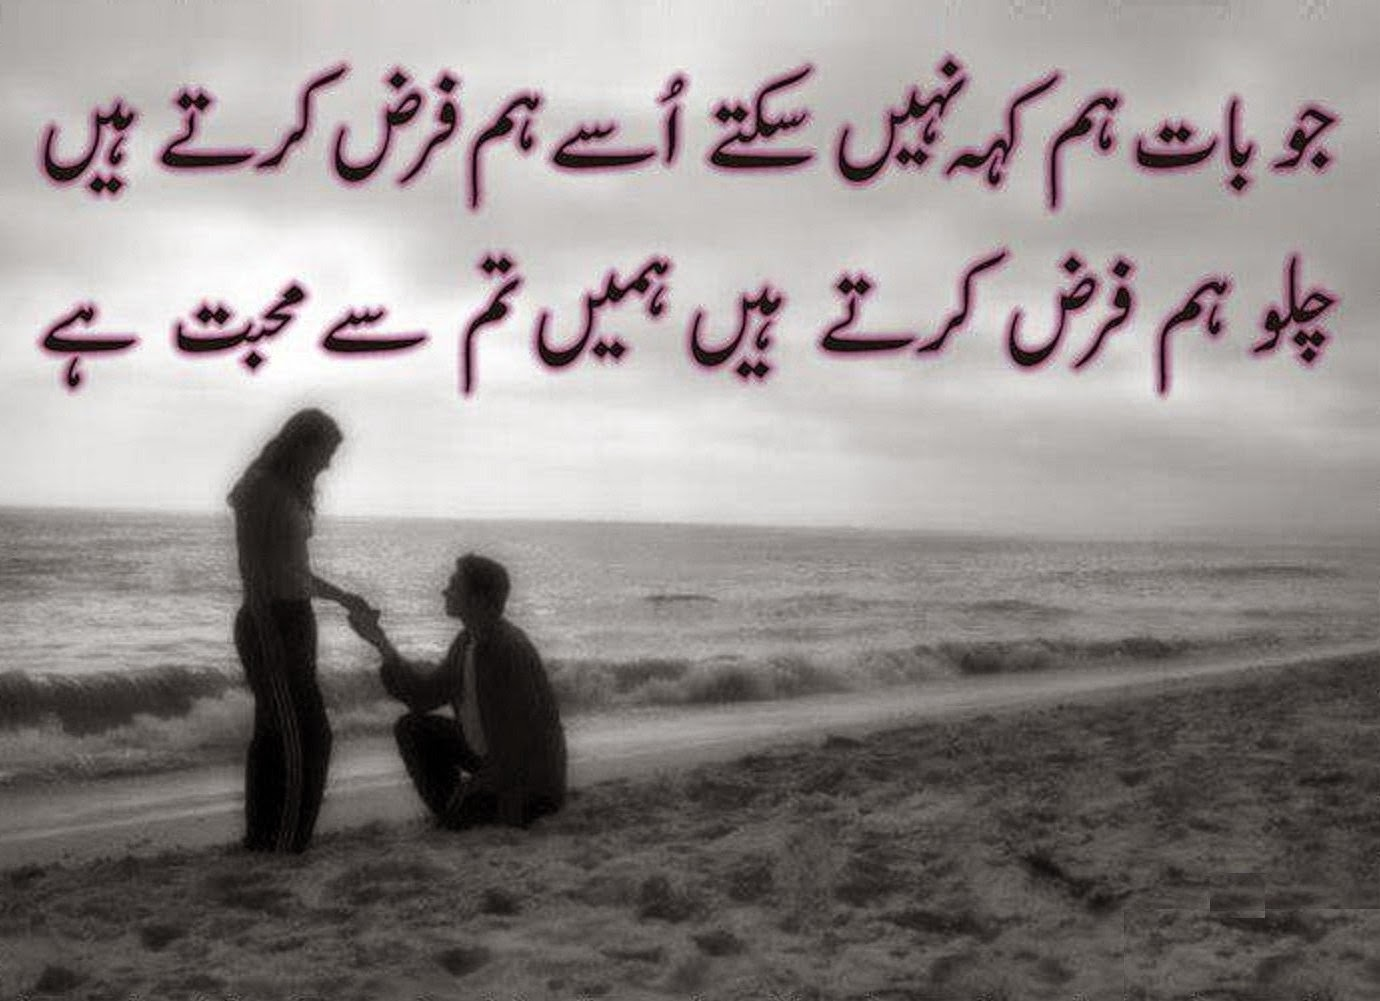 Download HD Wallpapers 3D Beautiful Sad Urdu Poetry HD Wallpapers 1380x1001